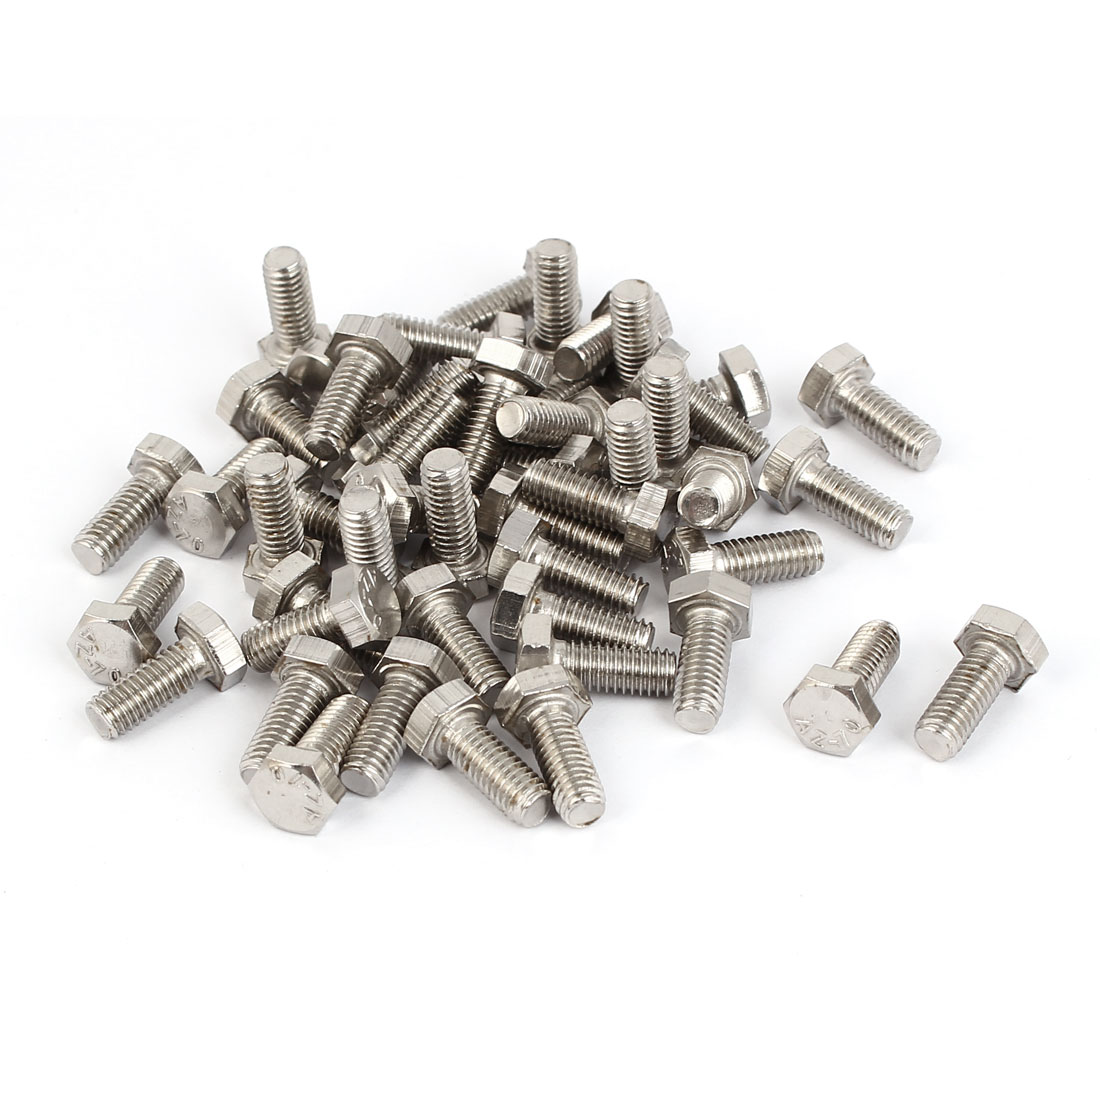 M5 x 12mm x 0.8mm Fully Thread External Hex Drive Hexagon Screws Bolts 50PCS